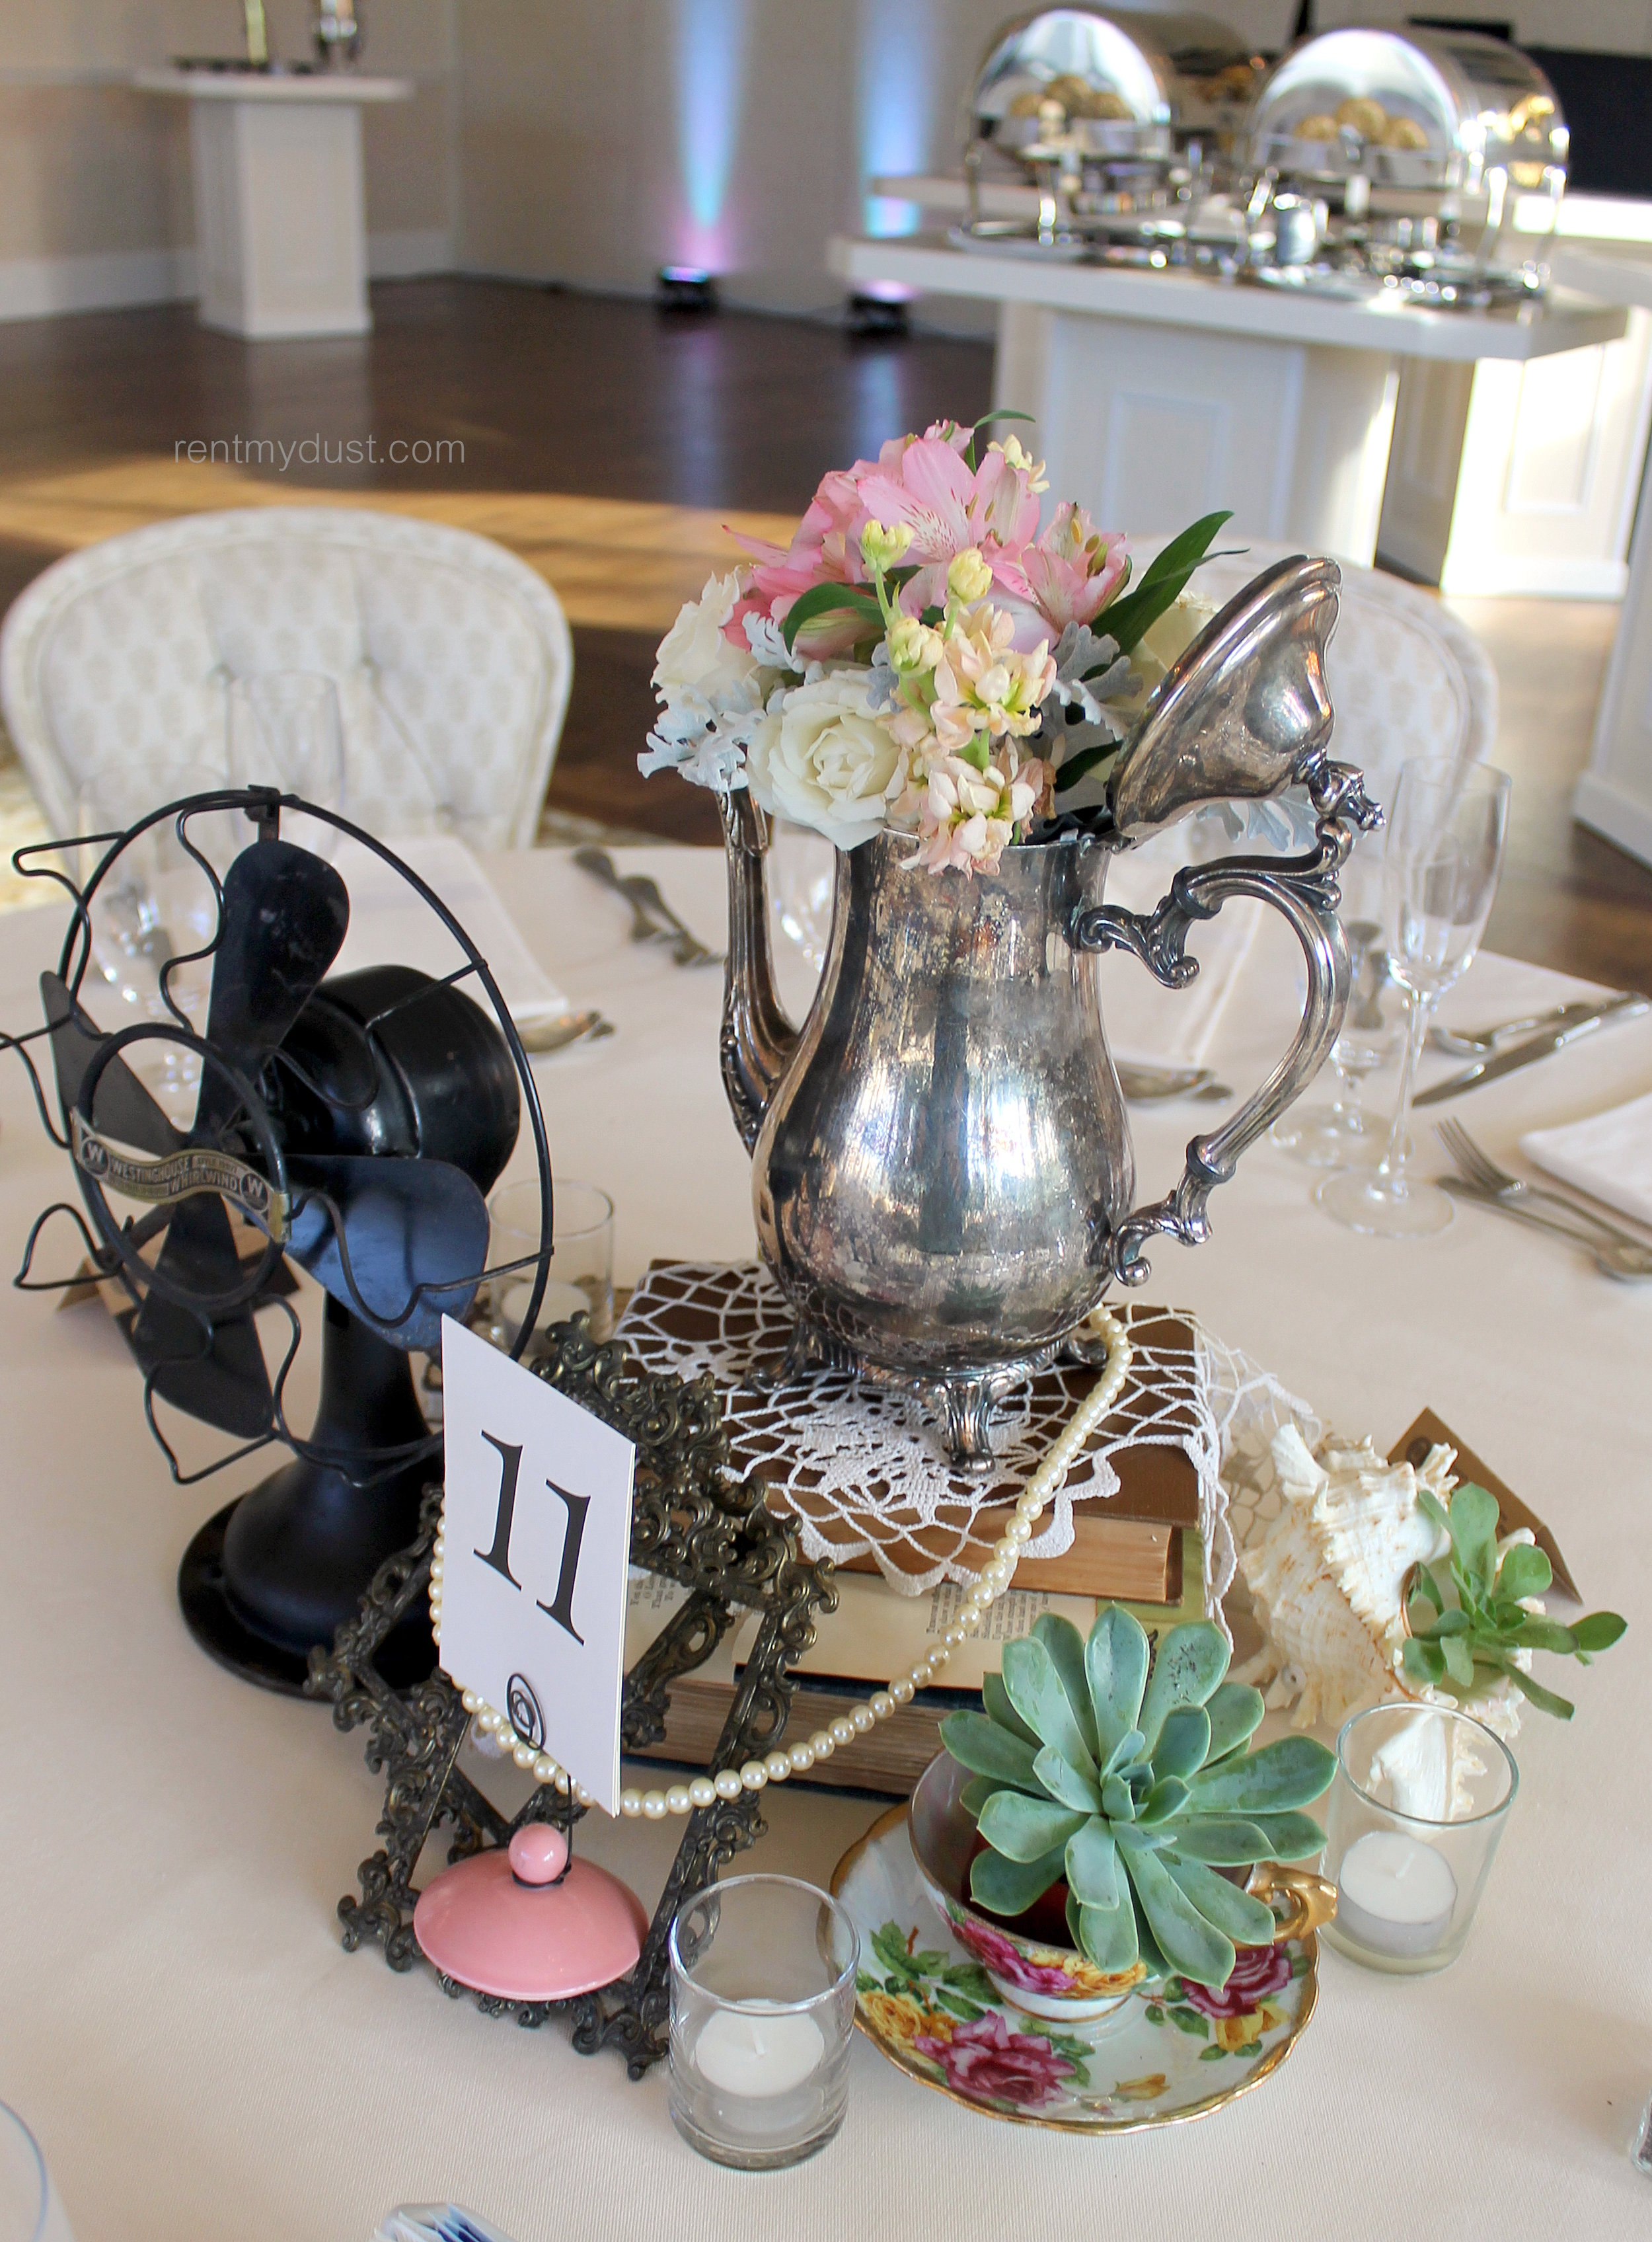 rent my dust_tablescape11.jpg